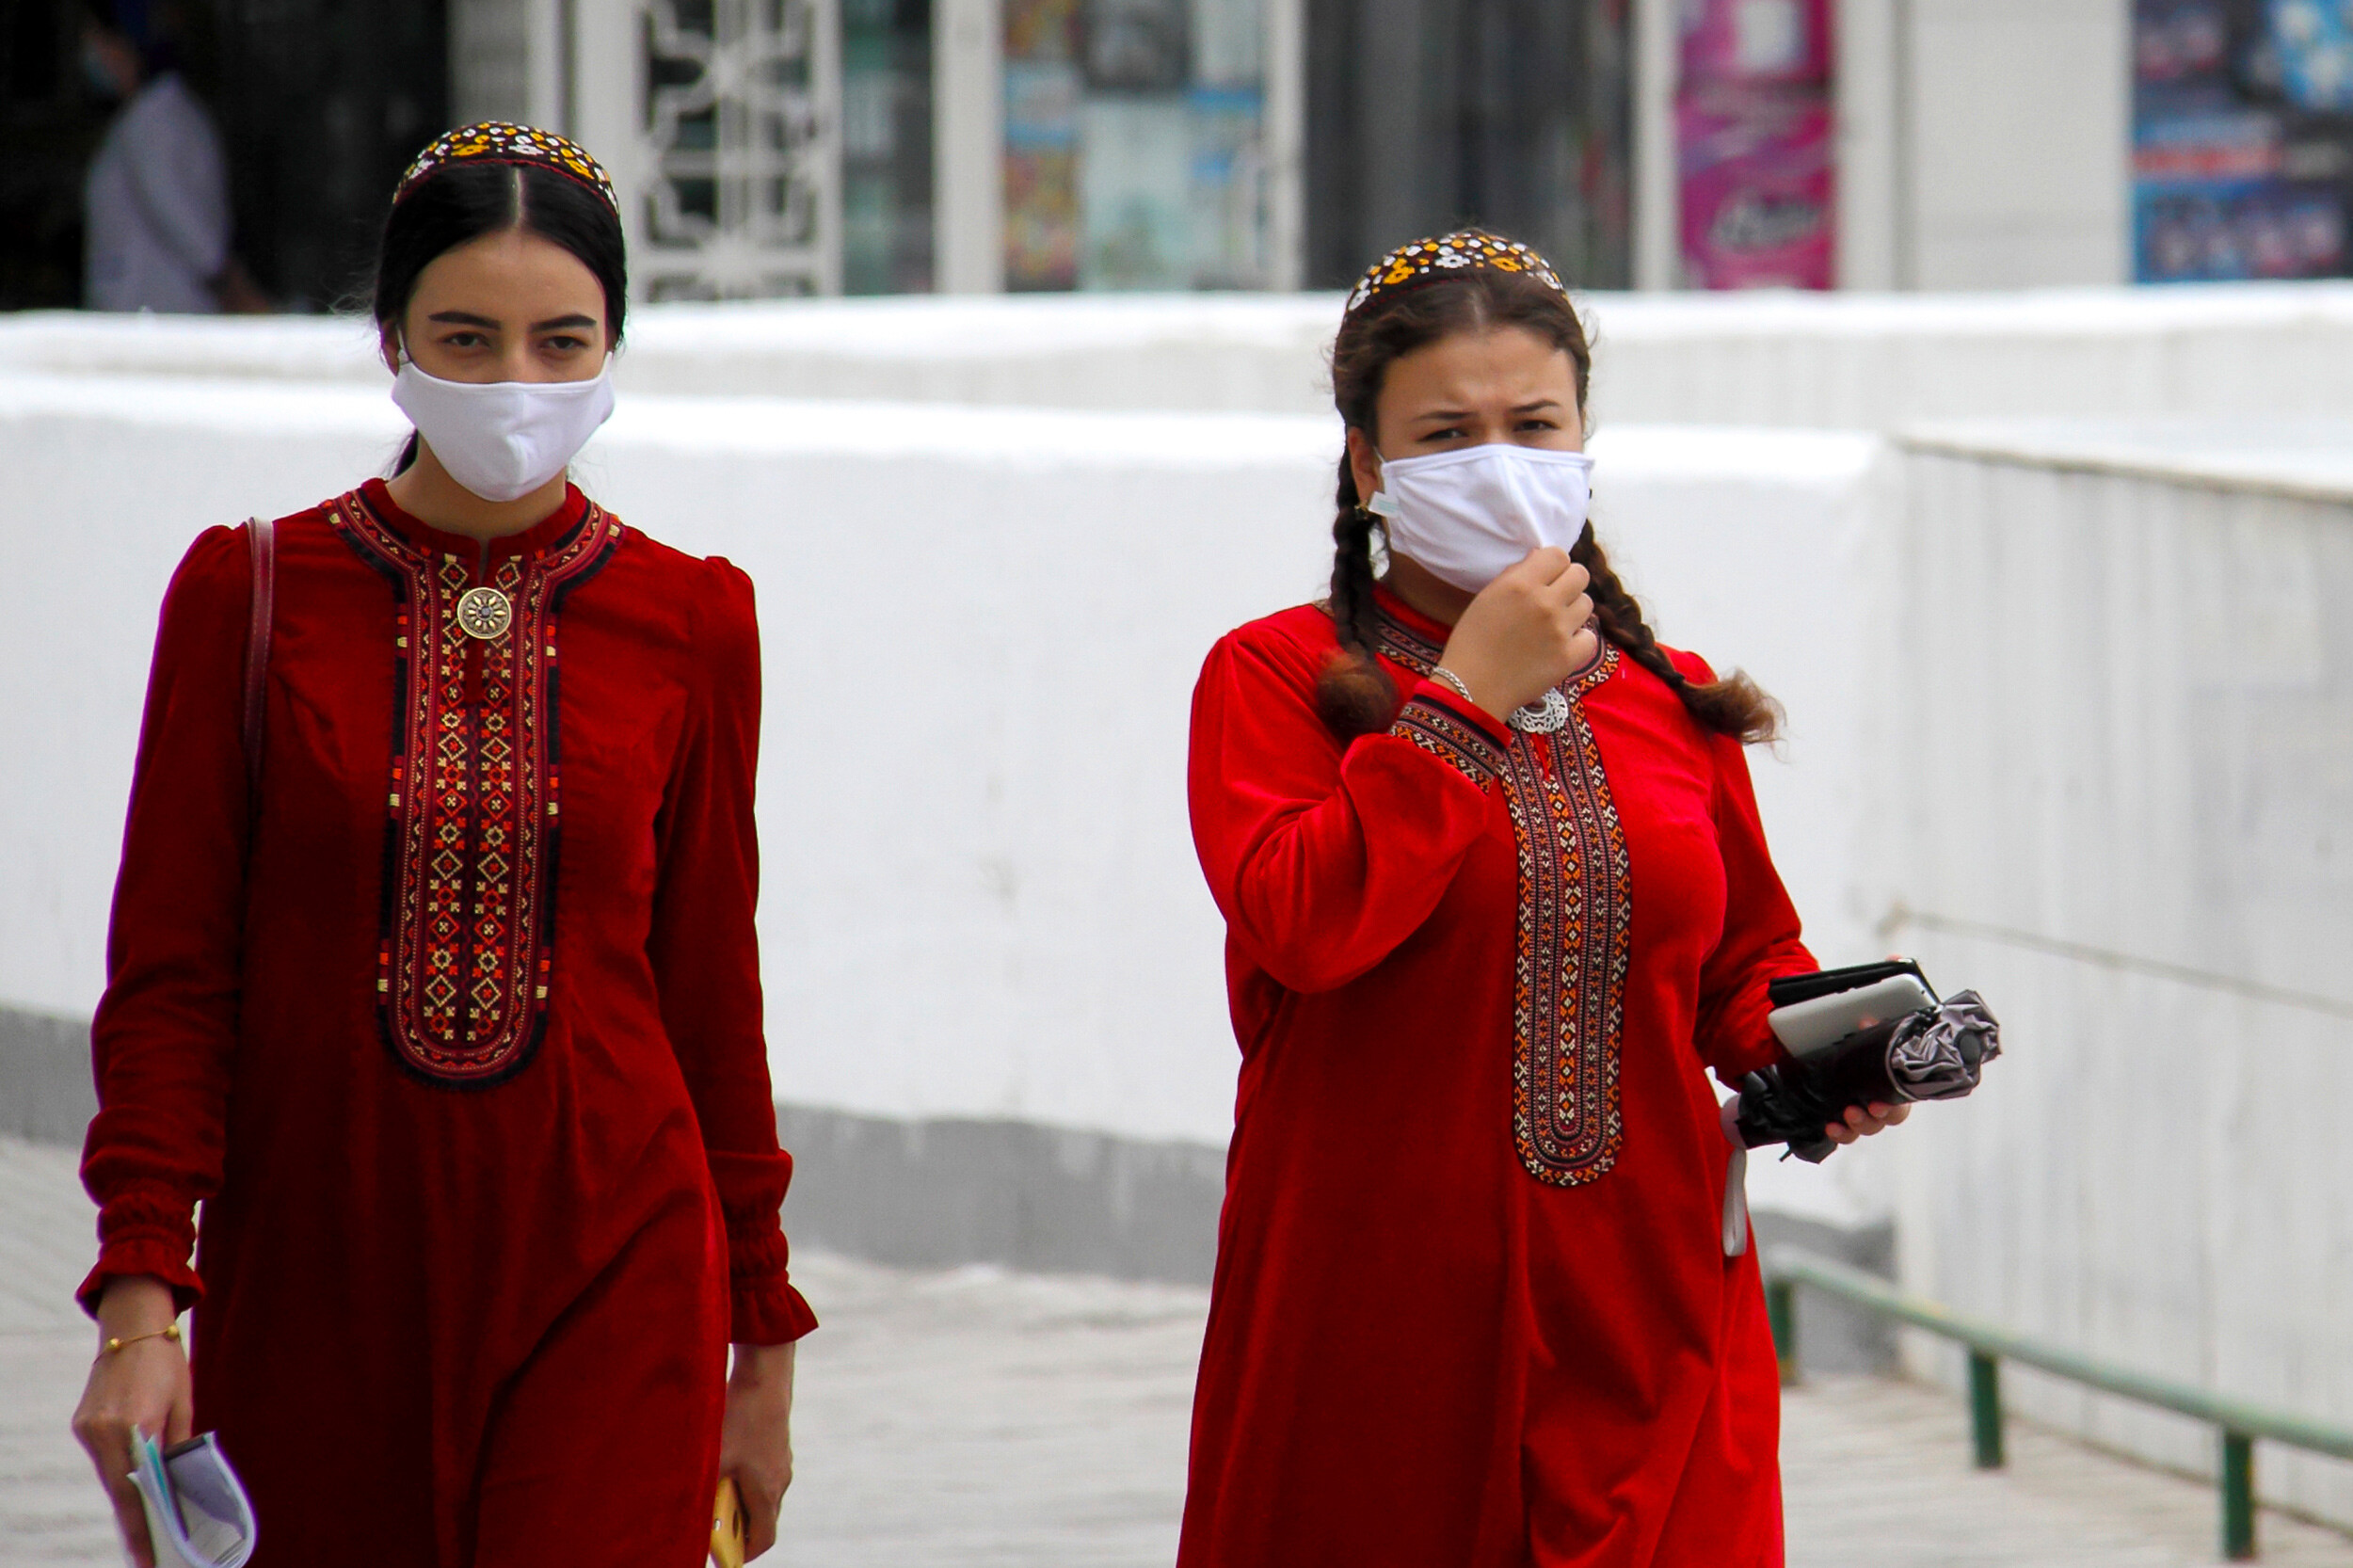 <i>STR/AFP/Getty Images</i><br/>In the nearly two years since the pandemic began